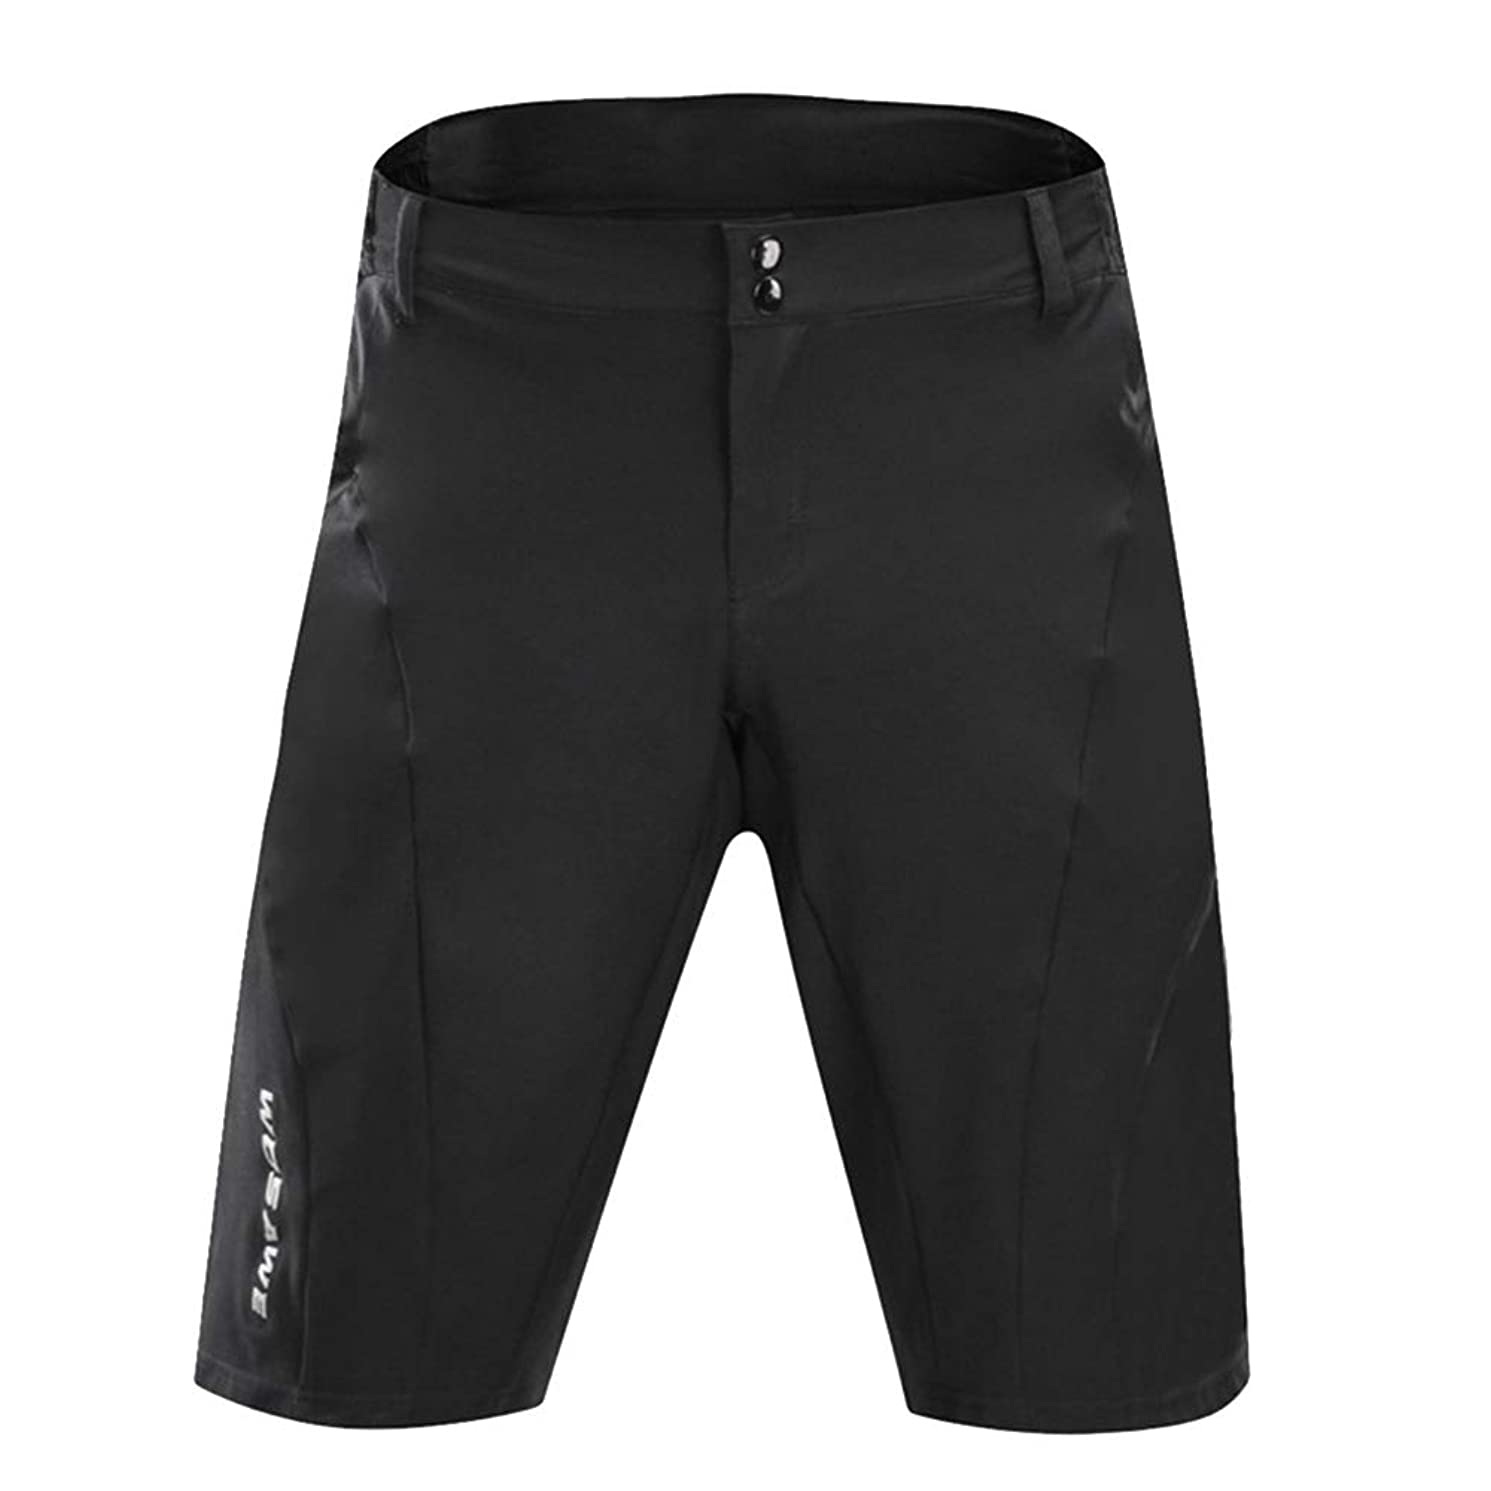 Little rock Summer Men's Cycling Shorts Padded Bicycle Riding Pants Bike Biking Clothes Cycle Wear Tights